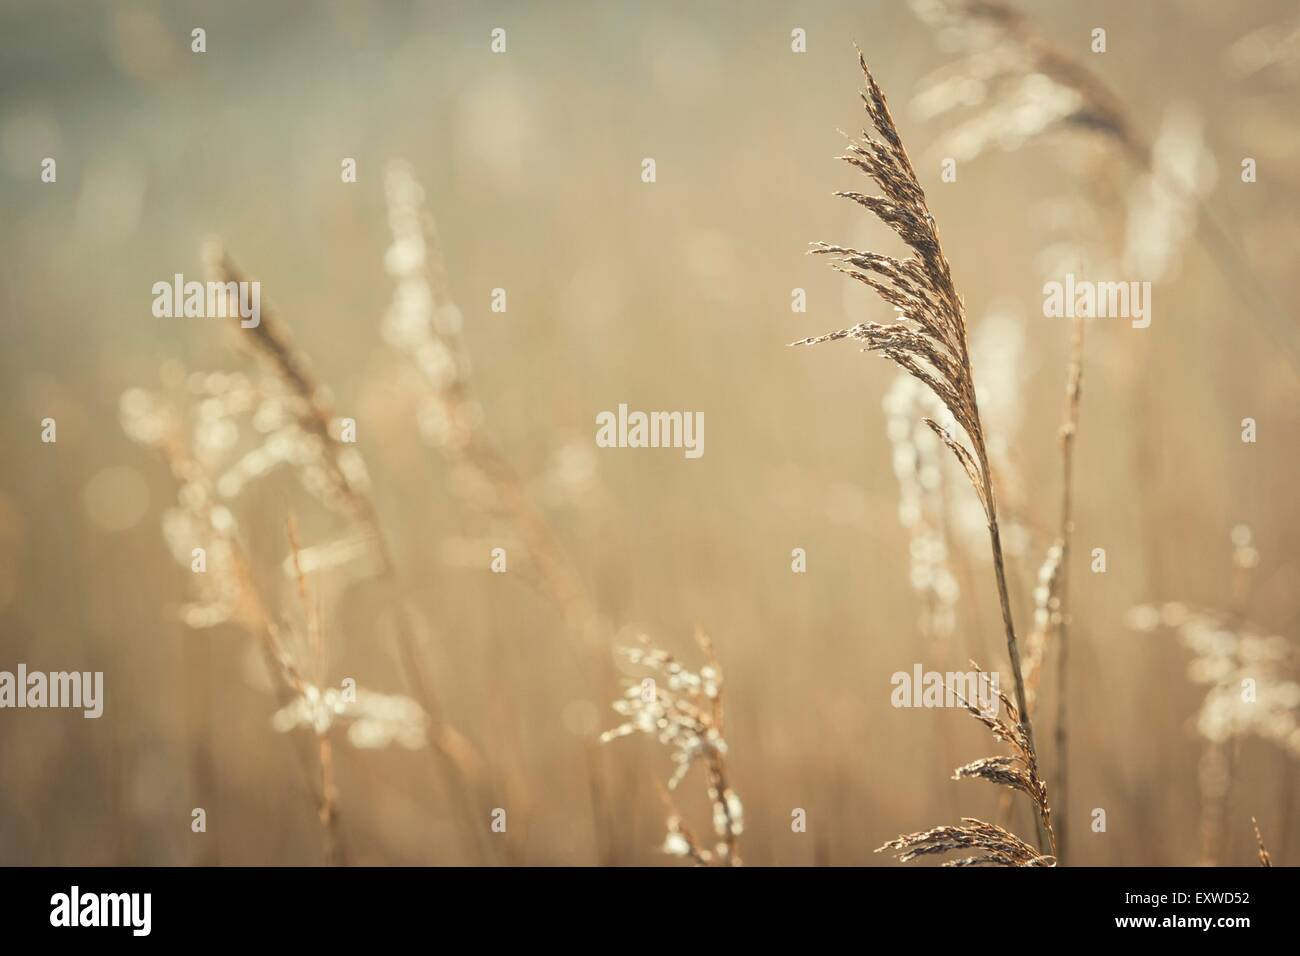 Withered reed blades in morning sun - Stock Image